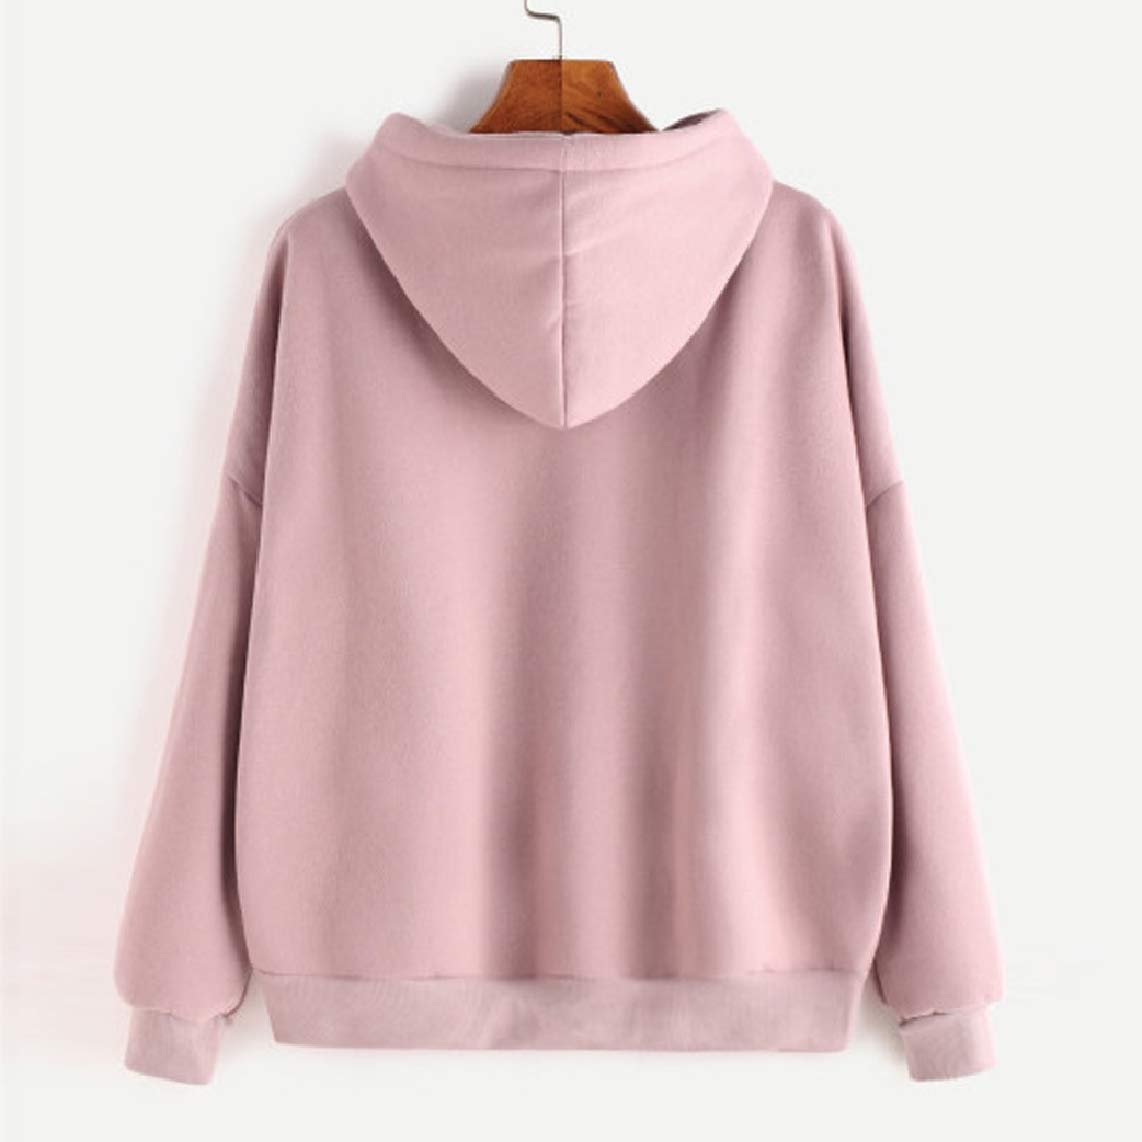 GodeyesWomen Long-Sleeve Pure Casual Drawstring Hoodies Sweater Pullover